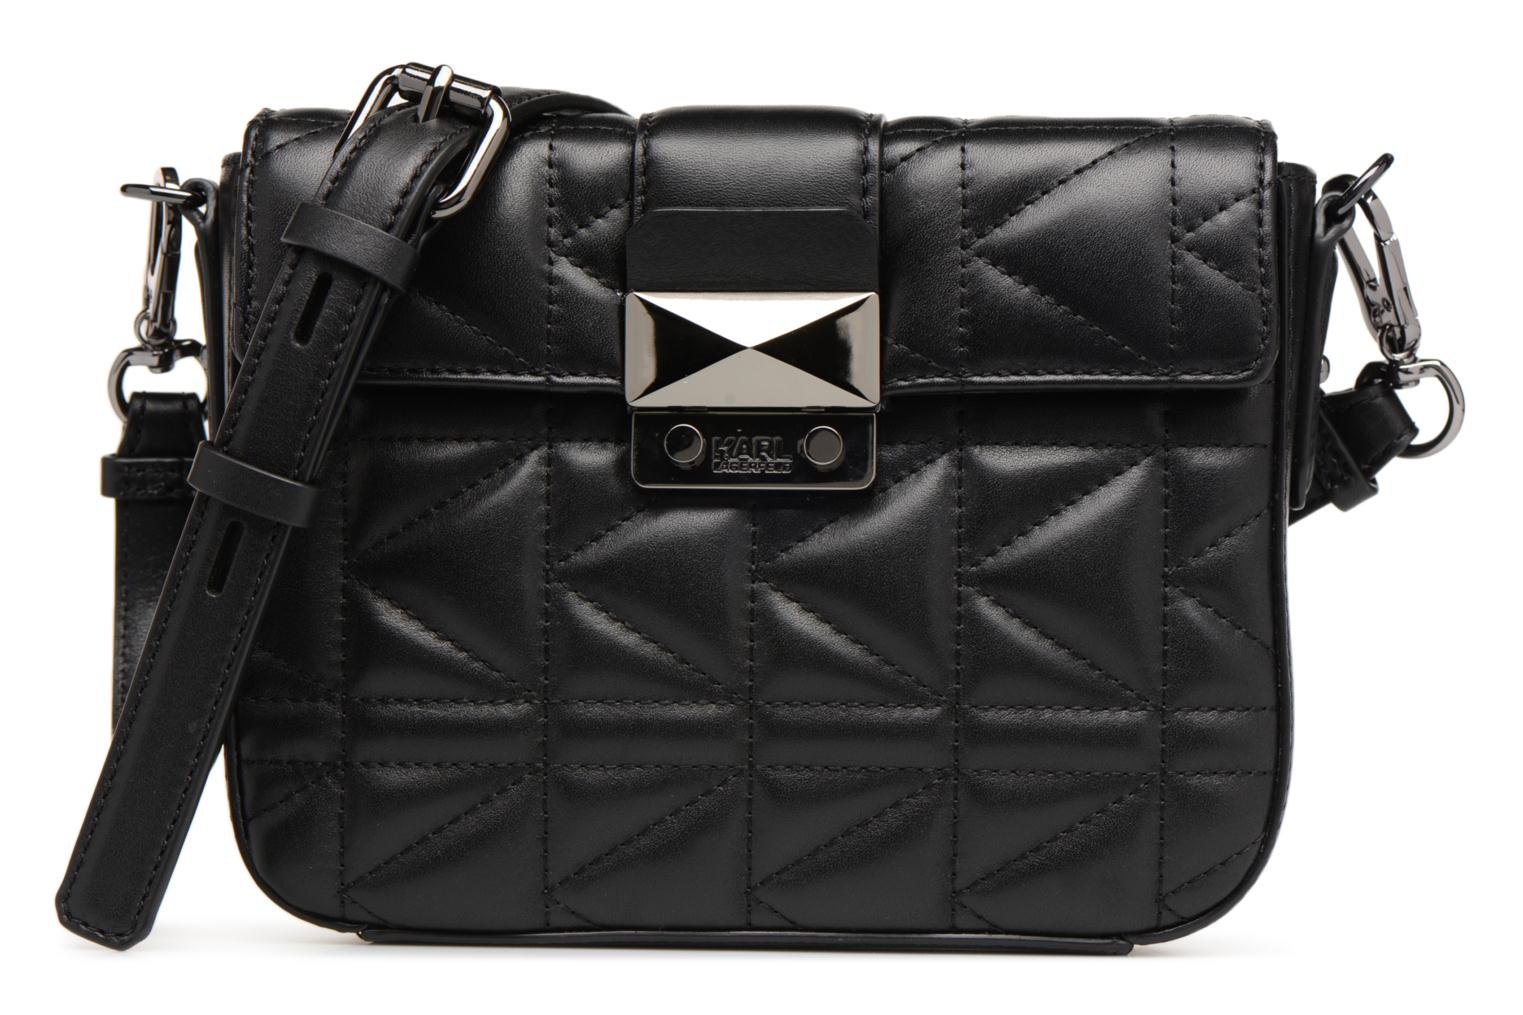 LAGERFELD Sac Black Gun Kuilted KARL Bandoulière Metal TqxwPEd